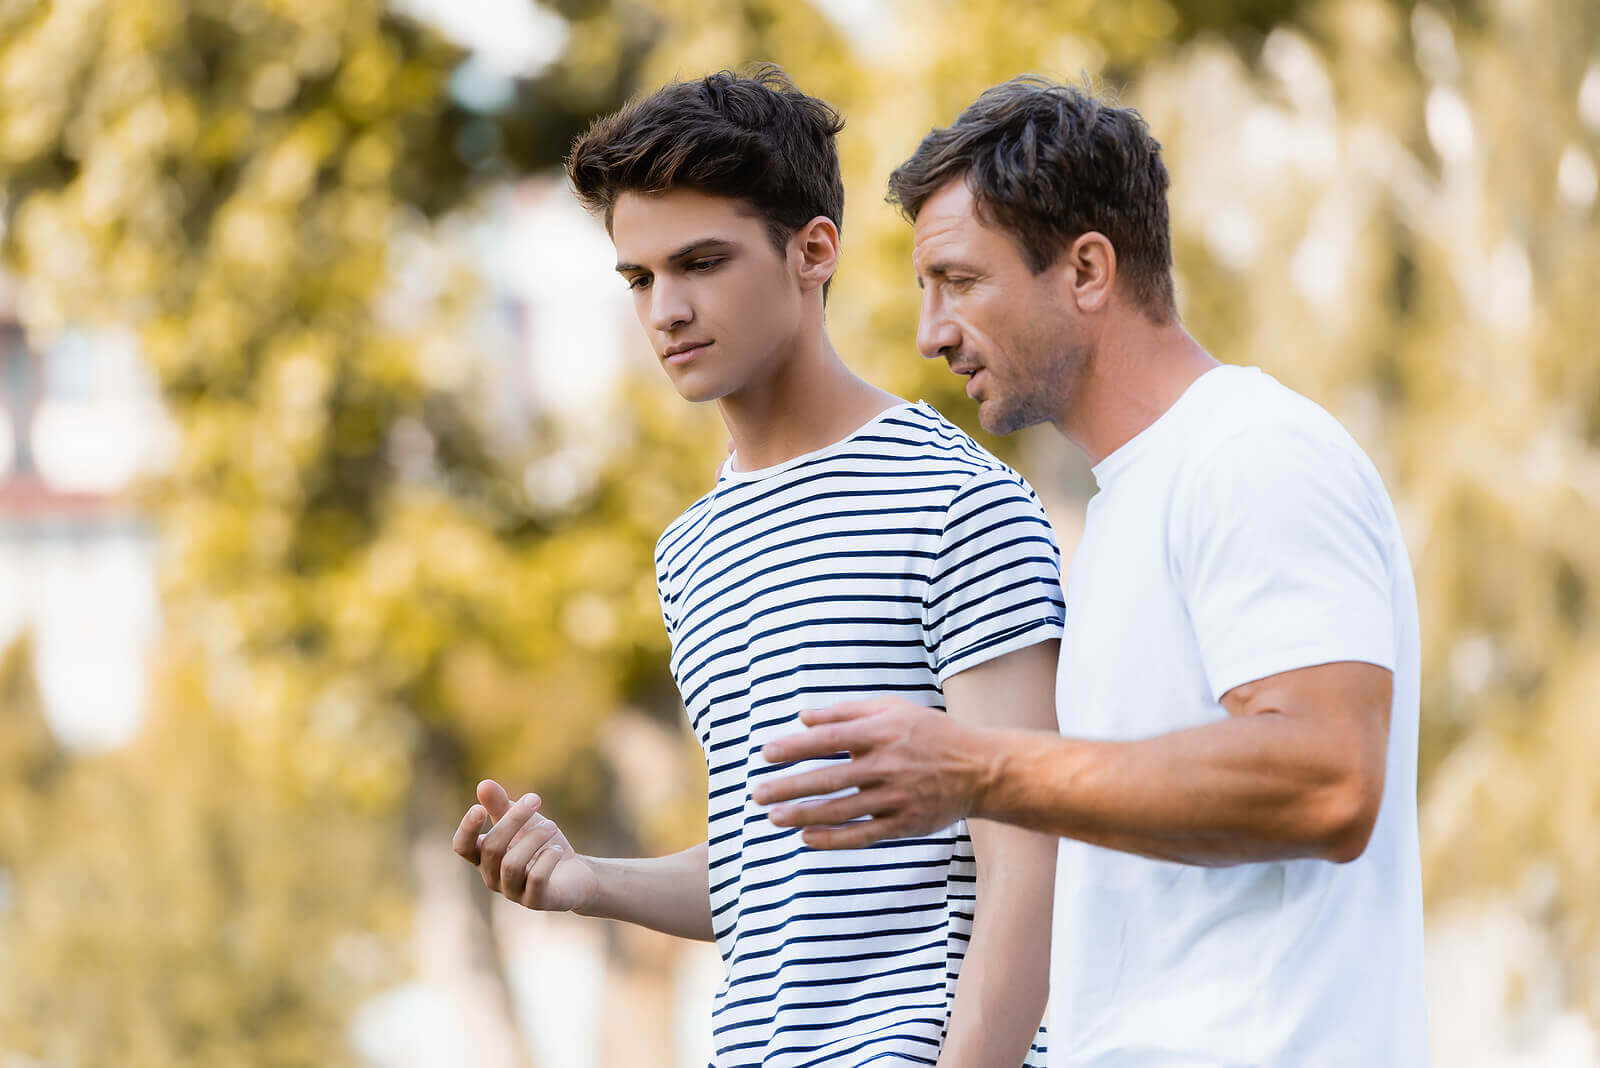 20 Questions to Get to Know Your Teenager Better